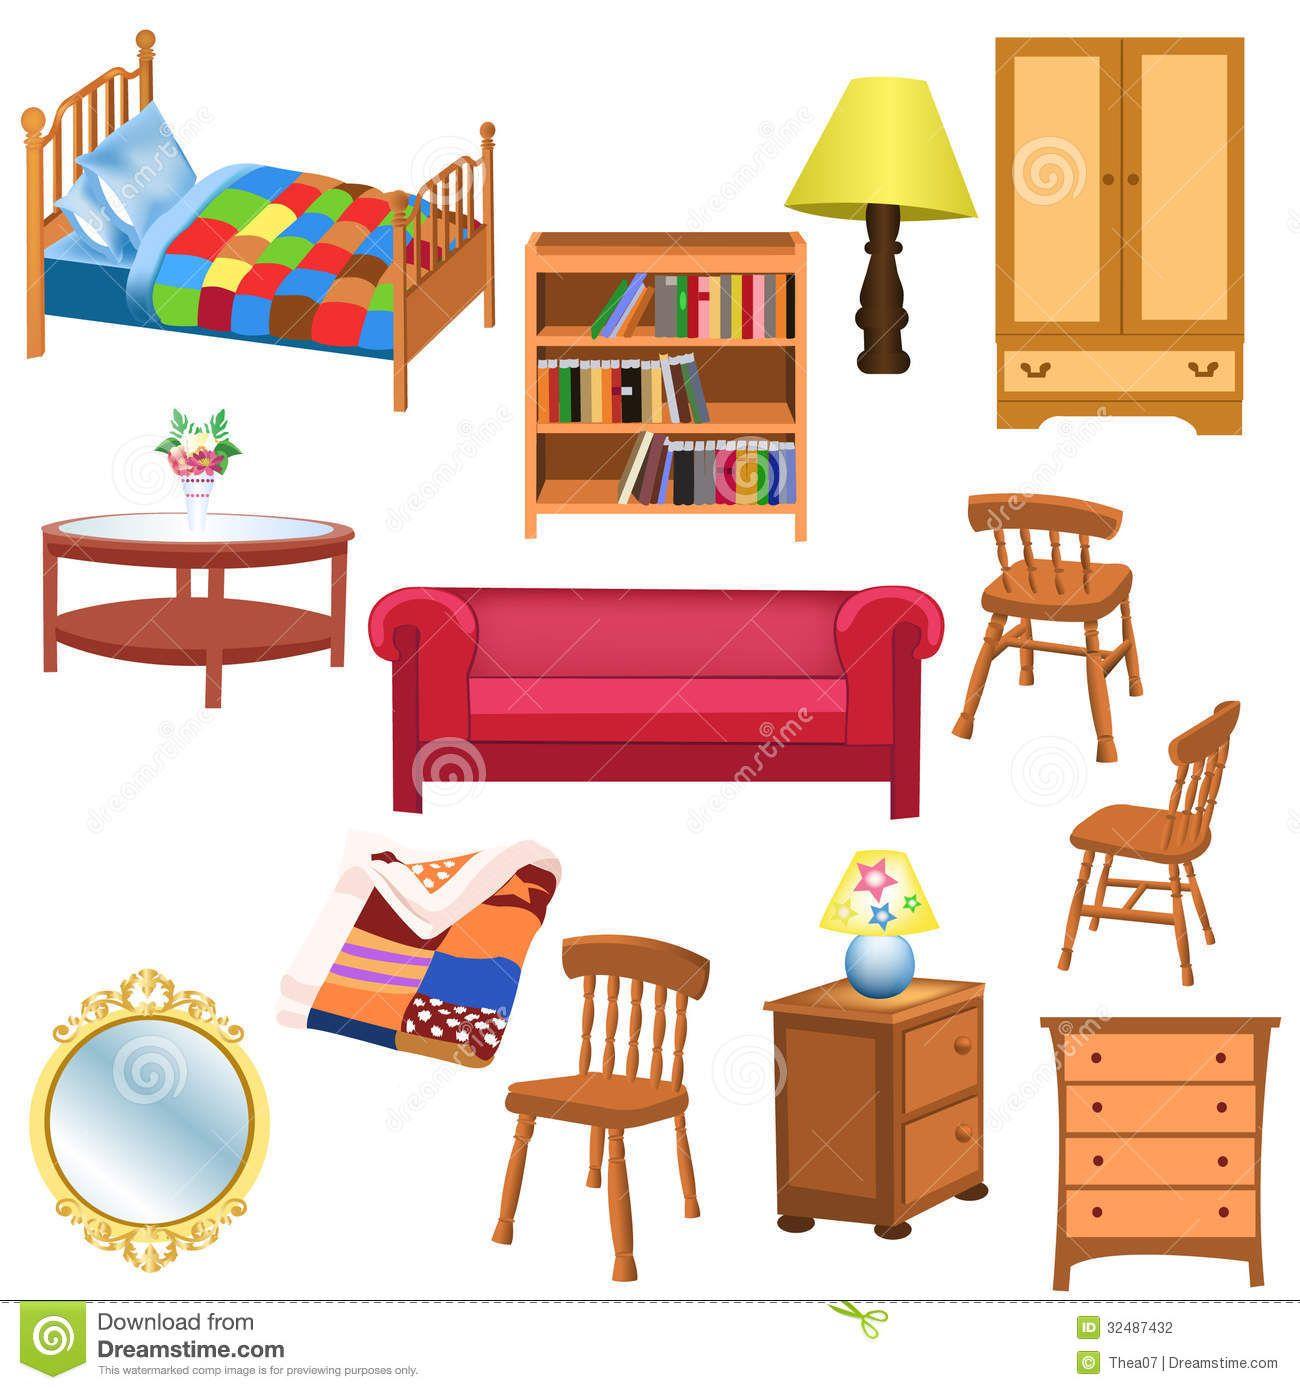 Clipart furniture pictures clip art royalty free library Living Room Furniture Clipart | Places to Visit | Furniture, Living ... clip art royalty free library